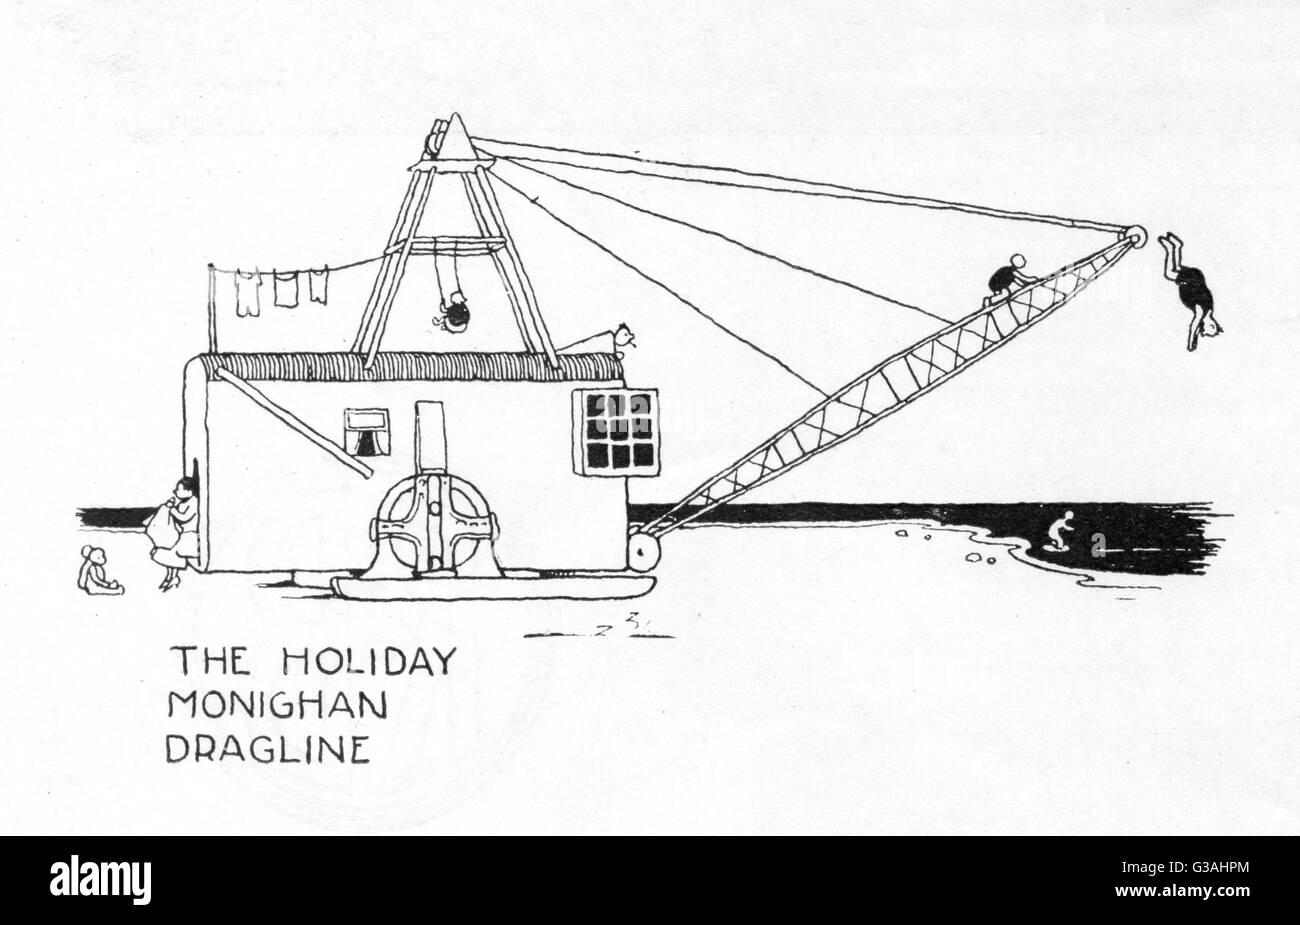 A dragline machine usually used in excavation, converted into a pleasant holiday home with room for a swing, a washing - Stock Image